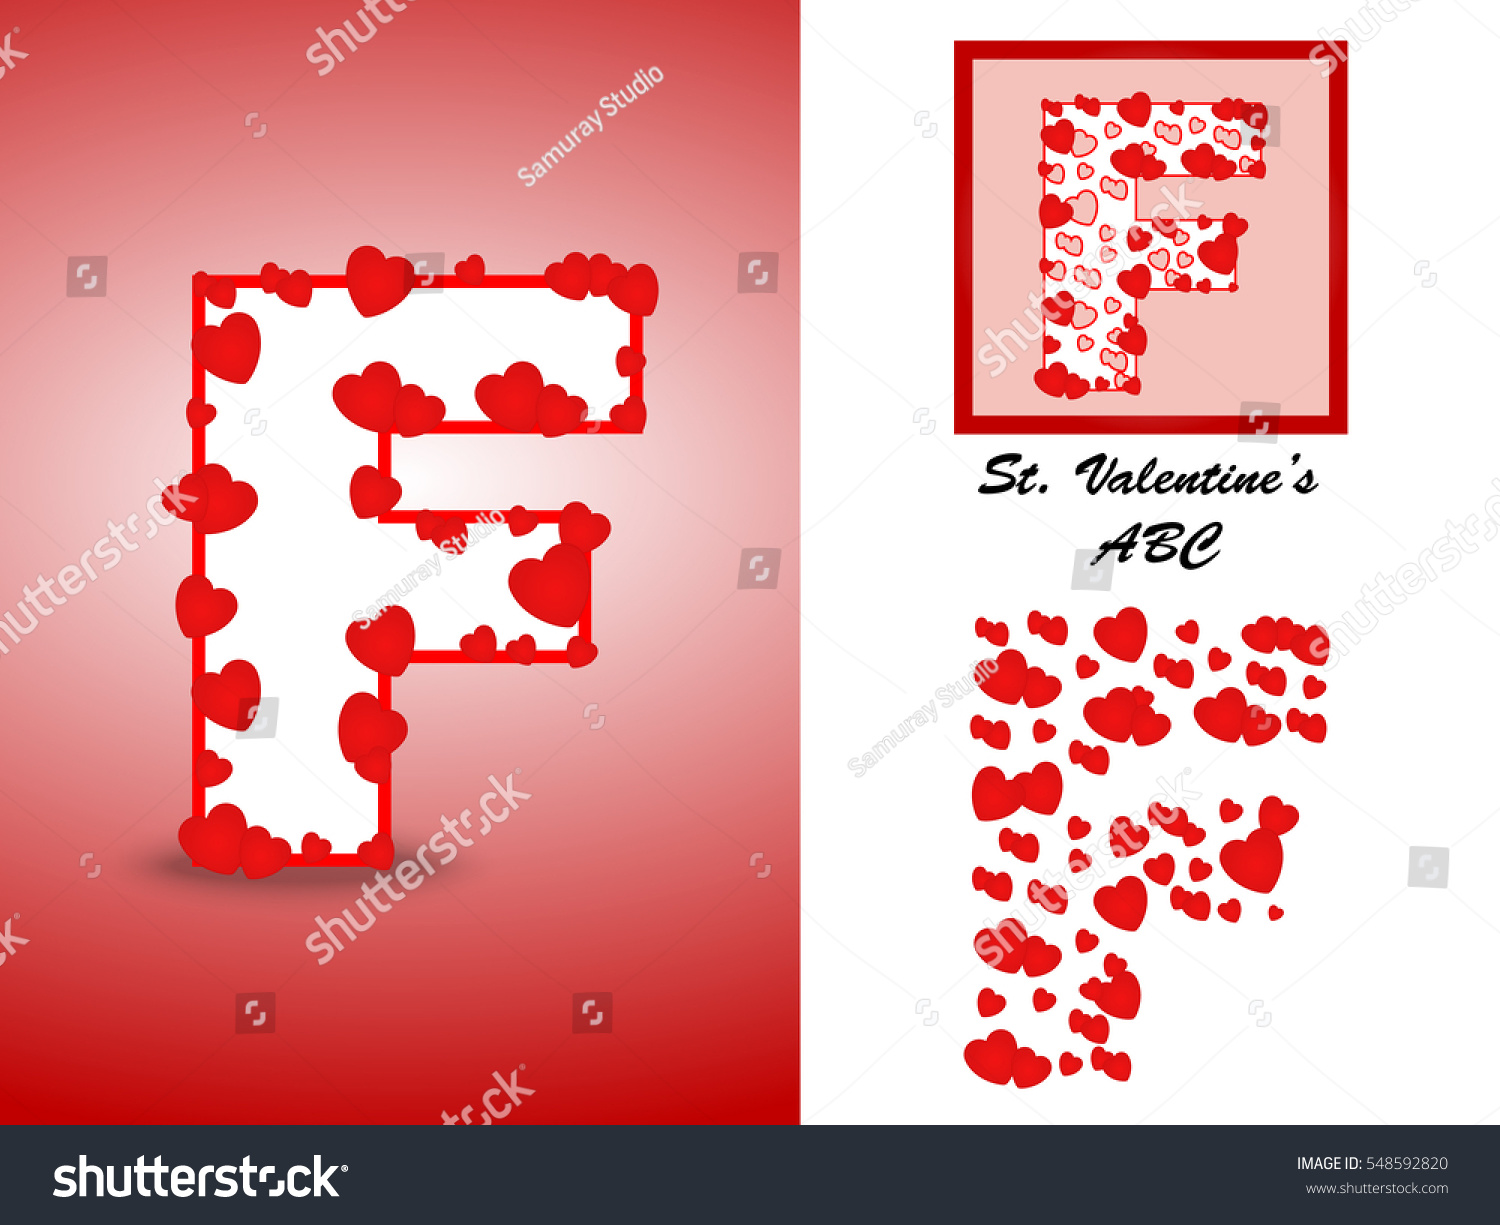 Alphabet Letter F Red Heart Valentine Stock Vector (Royalty Free ...